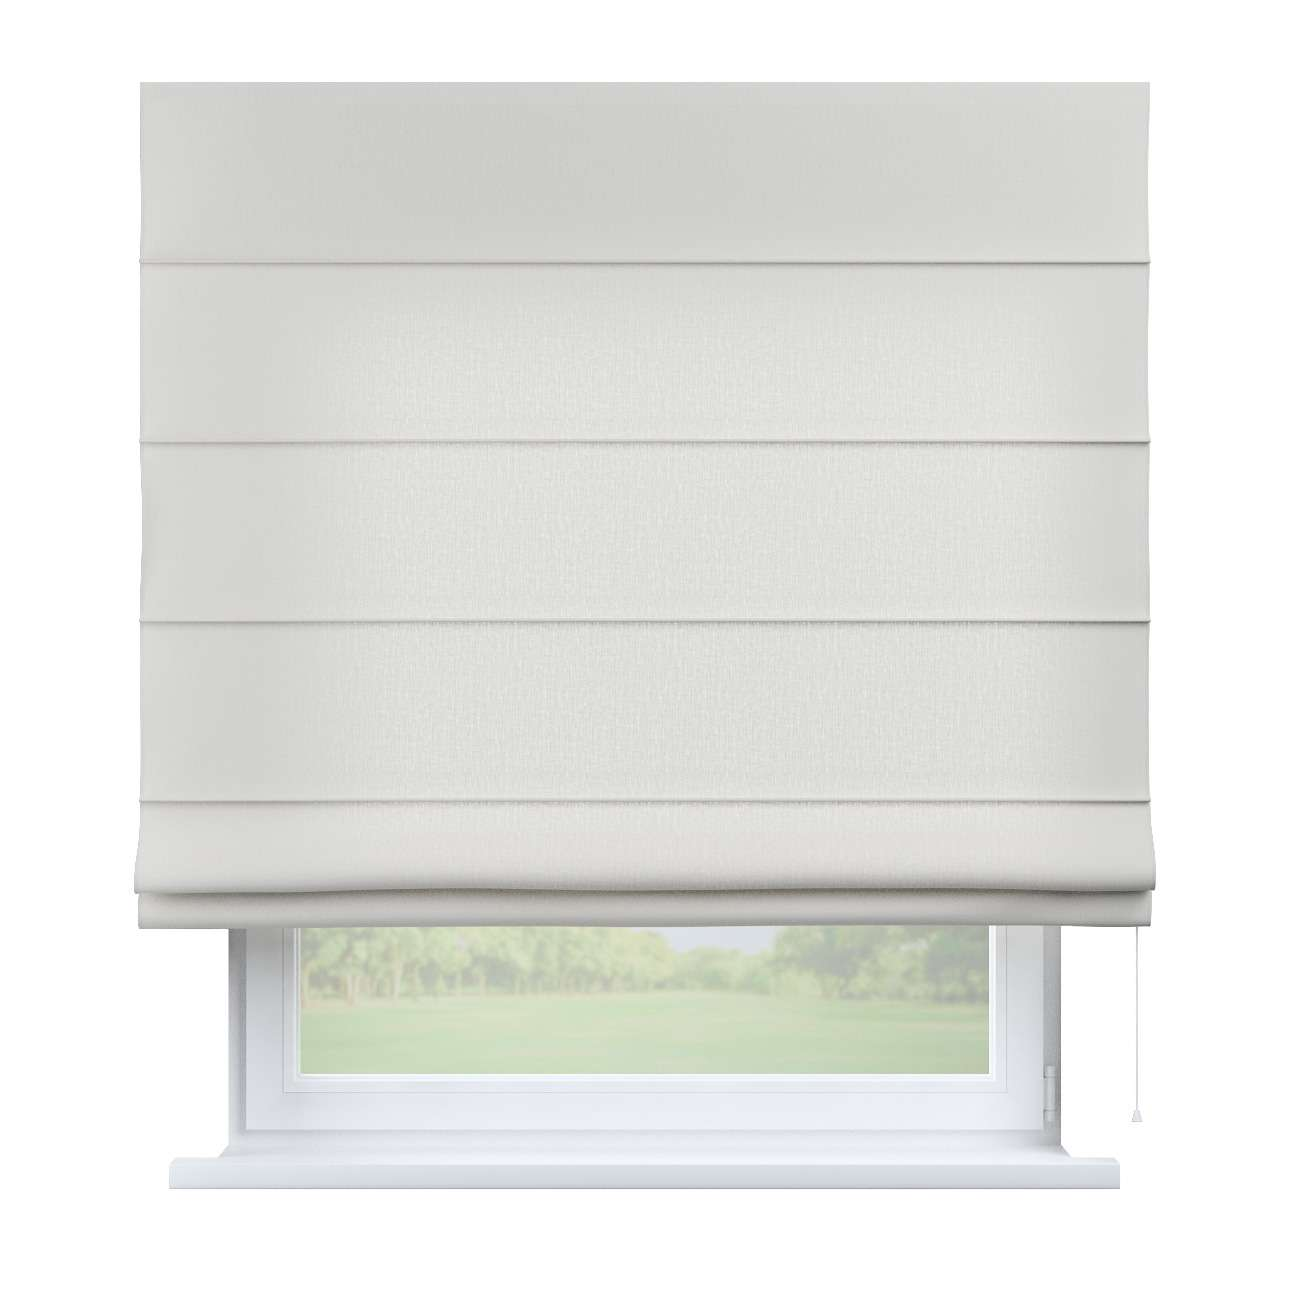 Billie roman blind in collection Nature, fabric: 159-06